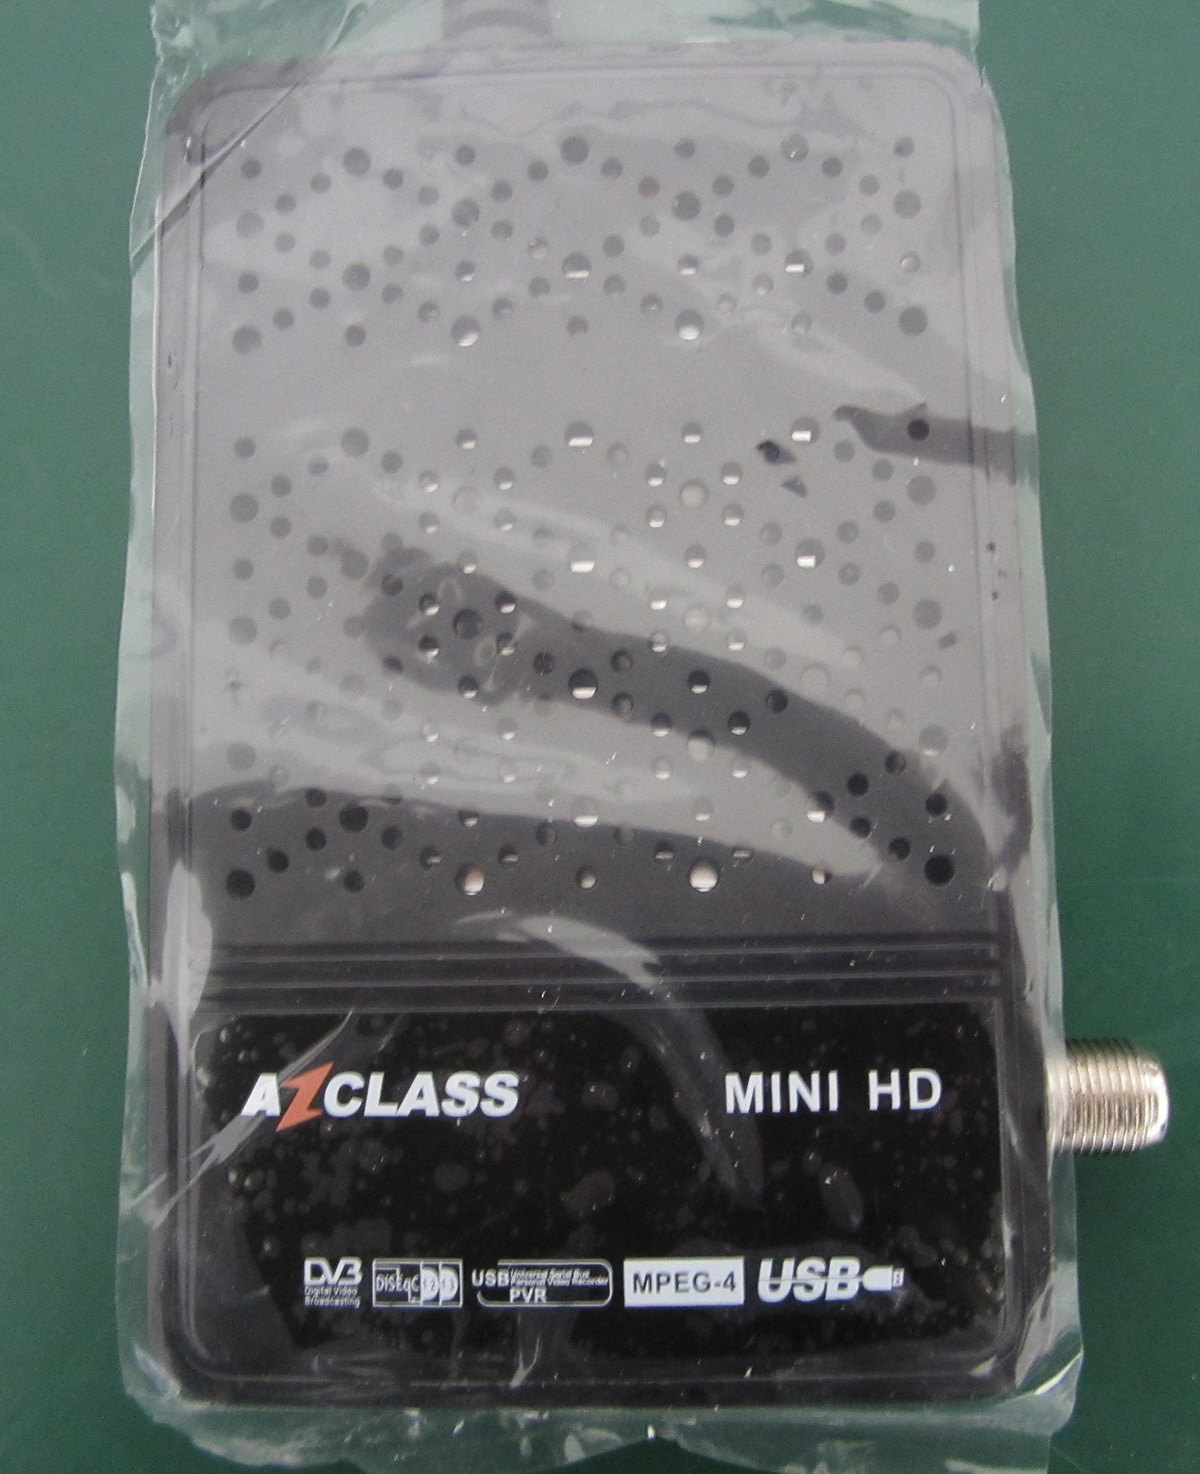 HD azclass mini receiver with free IKS account for Nagra3